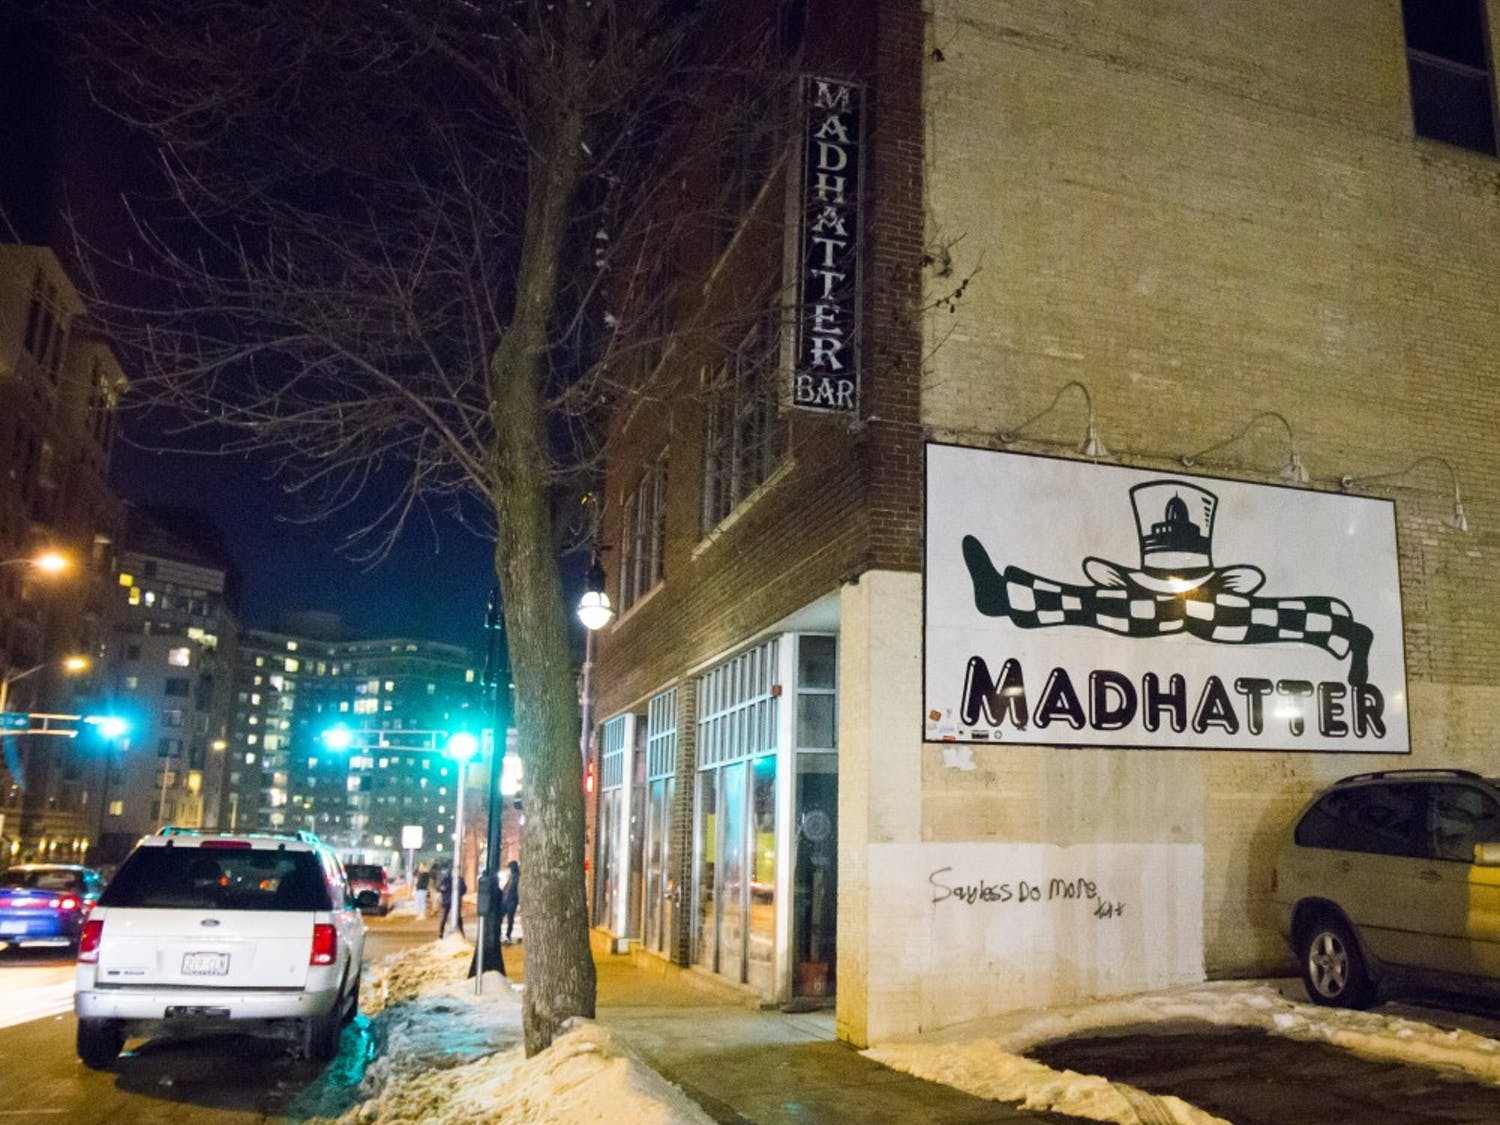 Madhatter Bar will remain at its current Gorham Street location, despite being under new ownership.